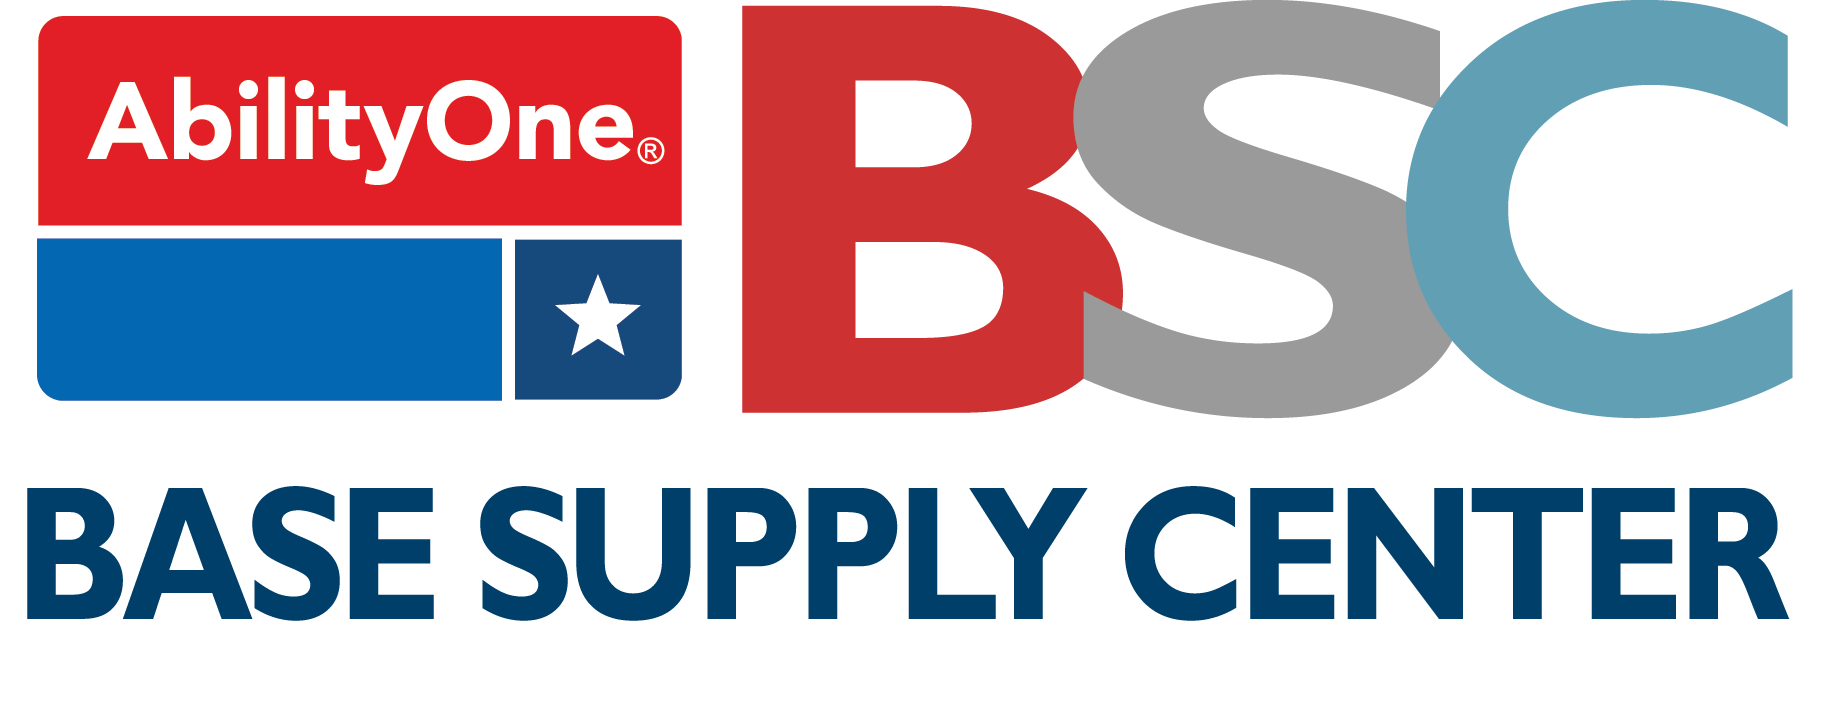 BSC (Base Supply Center) logo